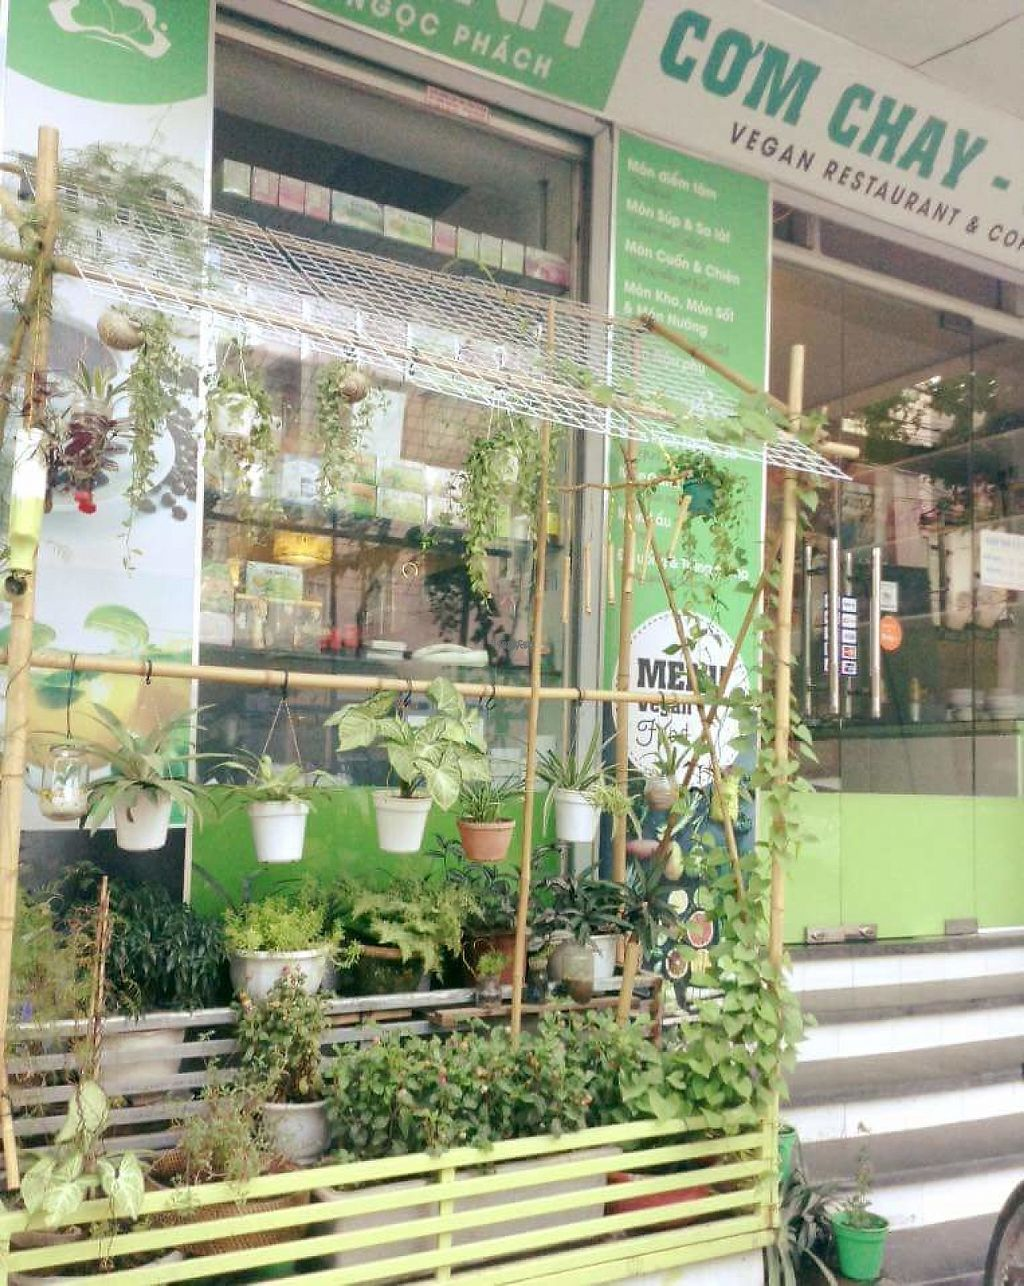 """Photo of Hieu Sinh Vegetarian Restaurant  by <a href=""""/members/profile/nicolasroux"""">nicolasroux</a> <br/>lil garden  <br/> March 29, 2017  - <a href='/contact/abuse/image/60469/242343'>Report</a>"""